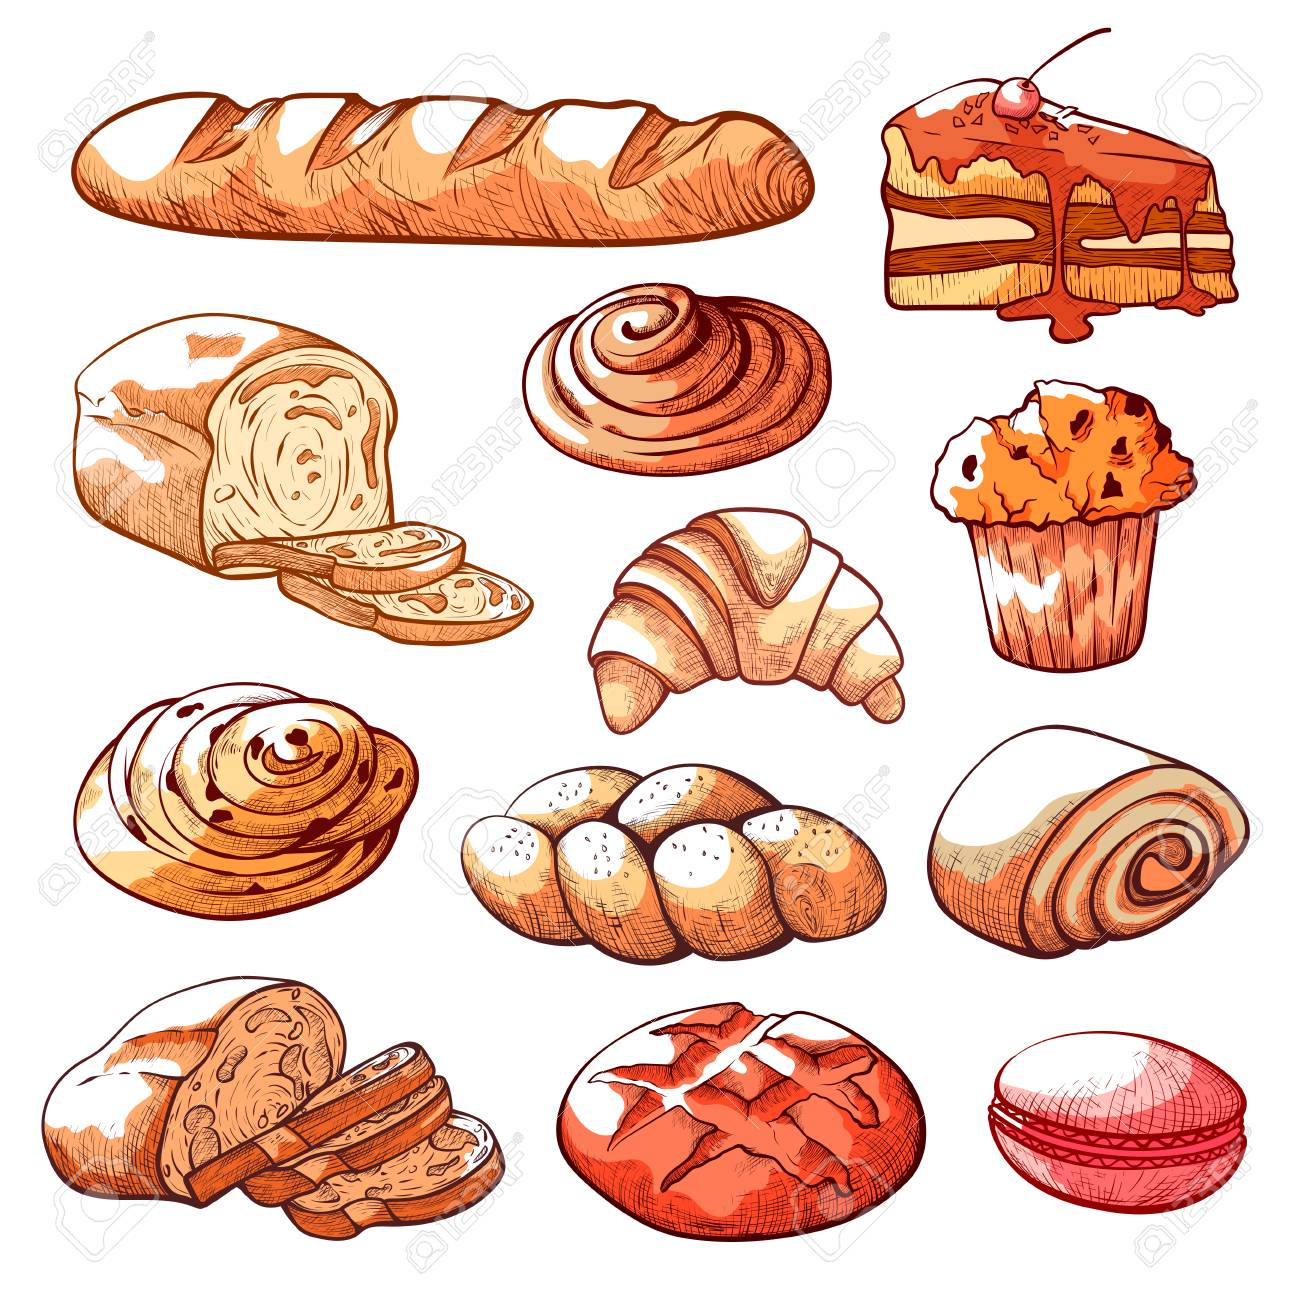 Bakery And Pastry Products Decoration For Place Where Bread